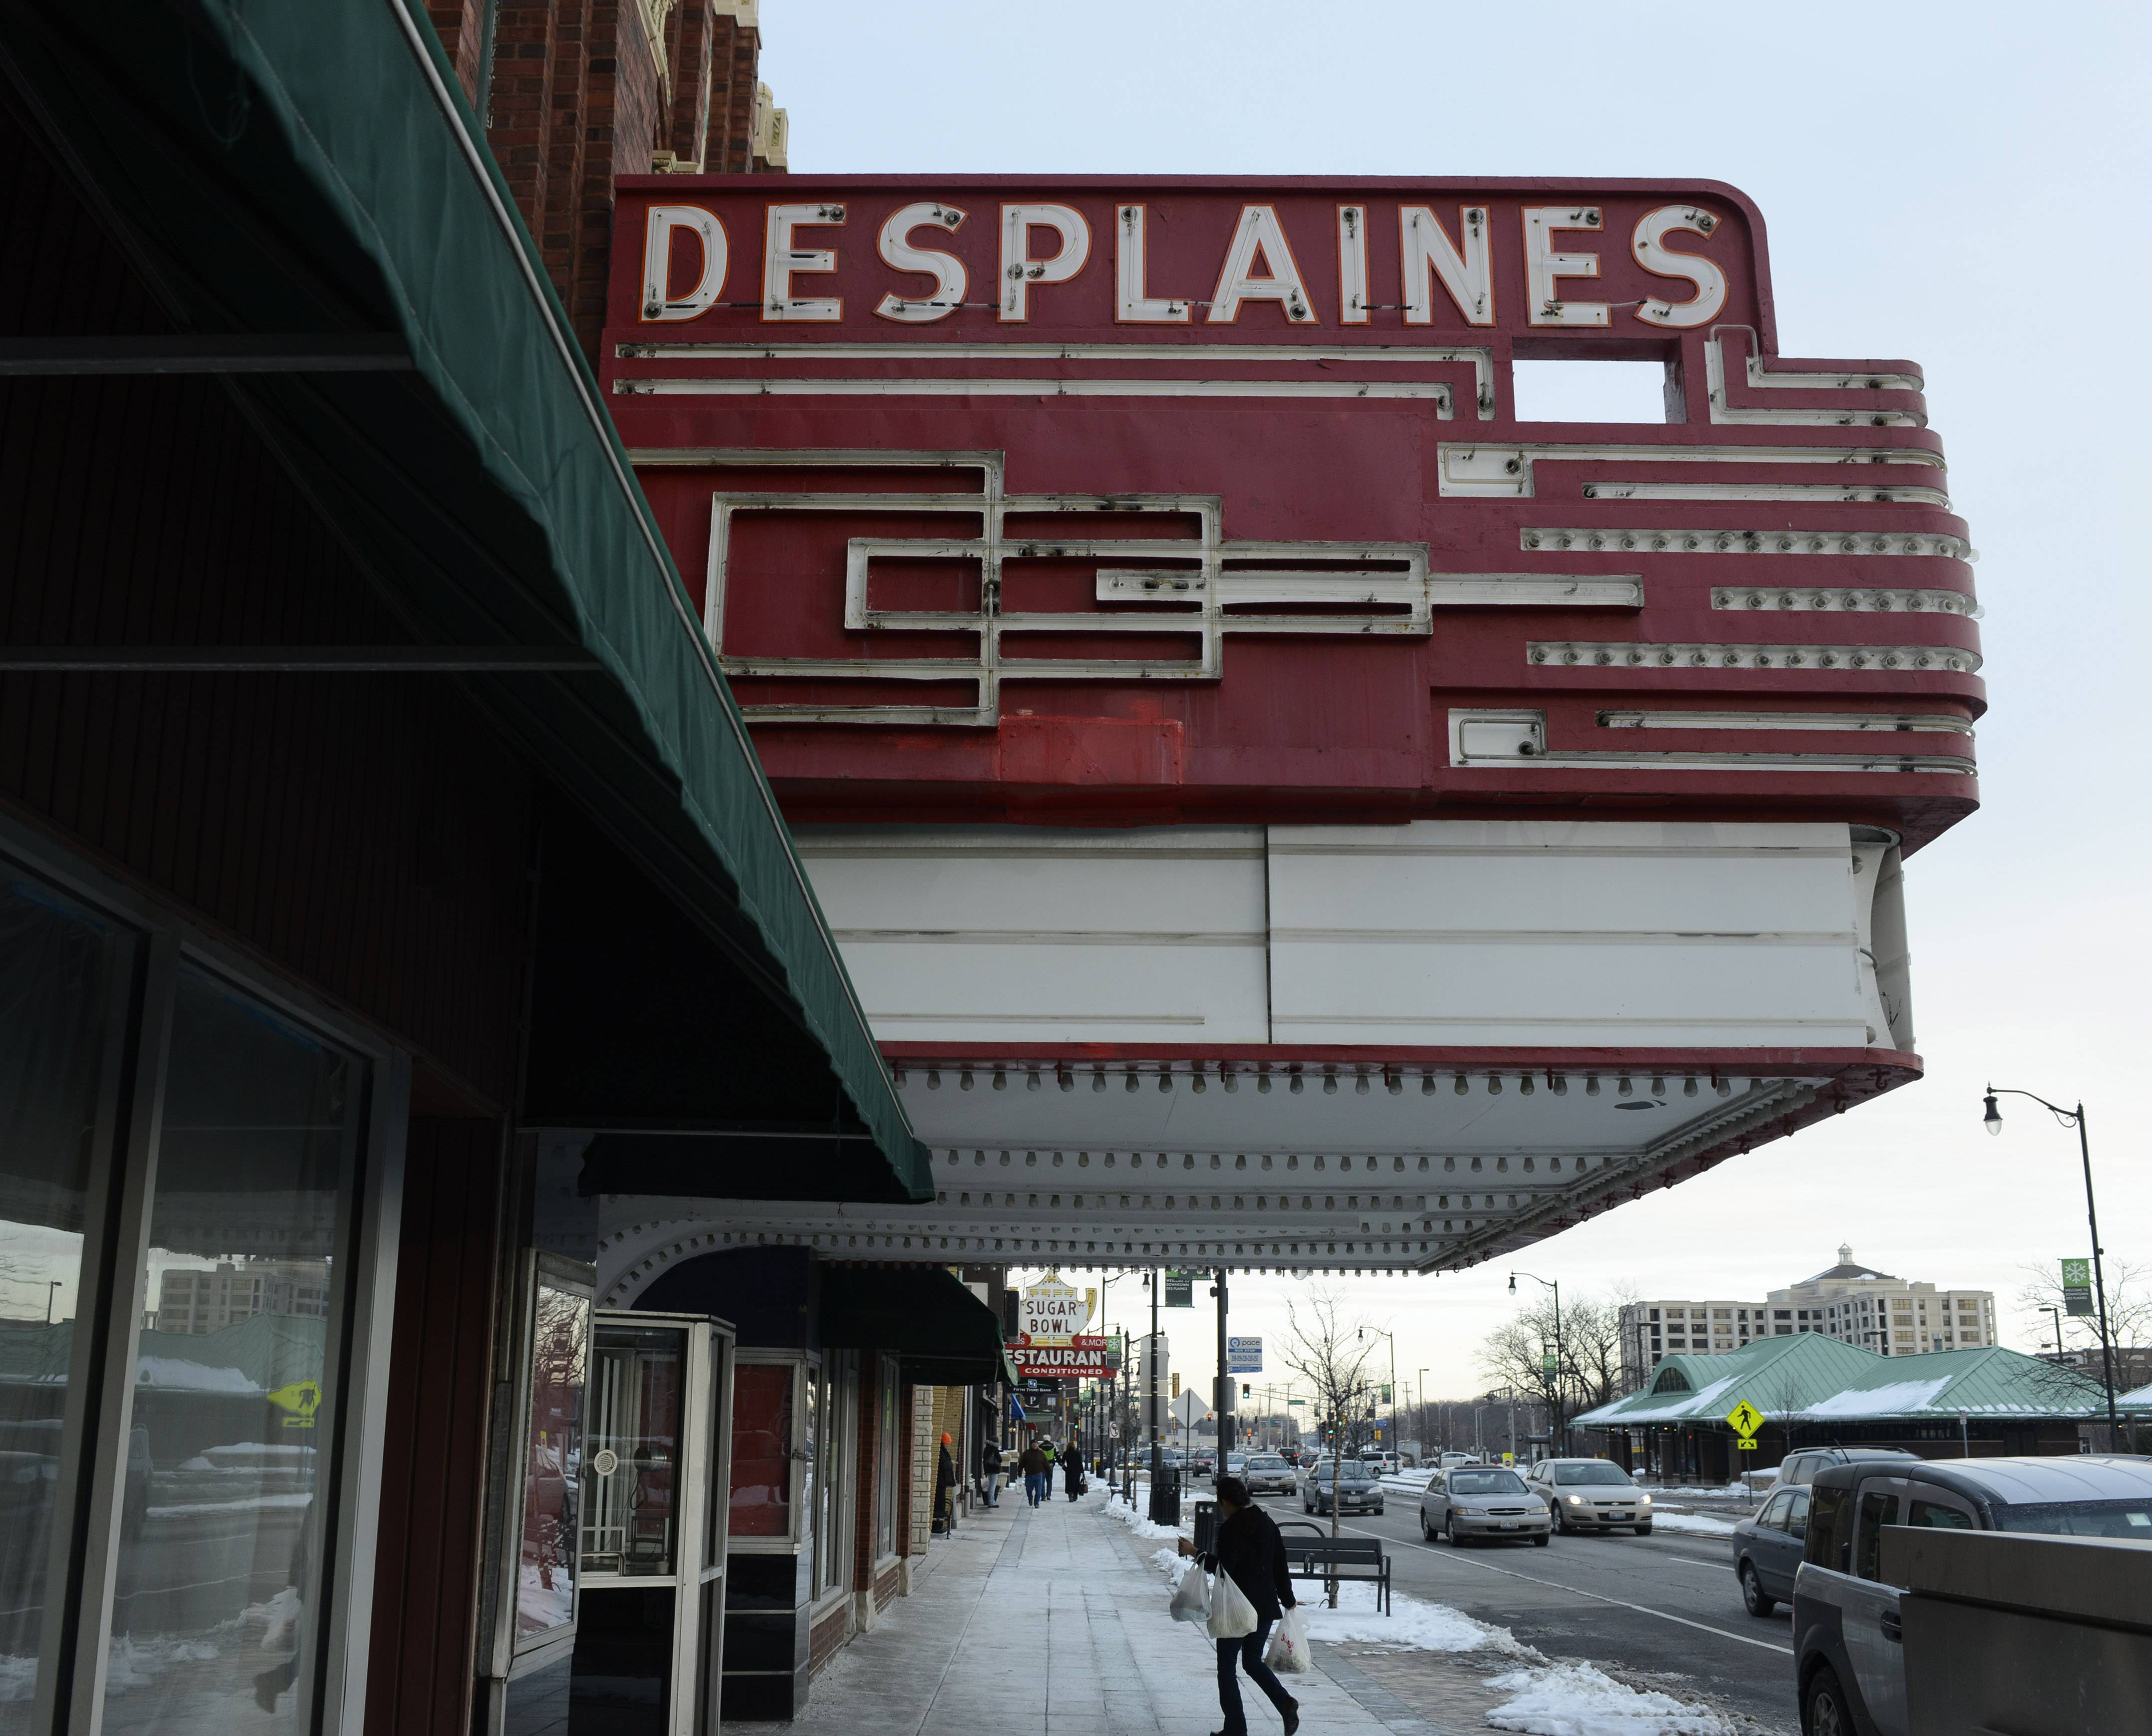 Two groups have expressed interest in either purchasing or managing the Des Plaines Theatre, which has been closed since January because of building code violations. The theater's owner will meet city officials Tuesday to discuss the proposals.